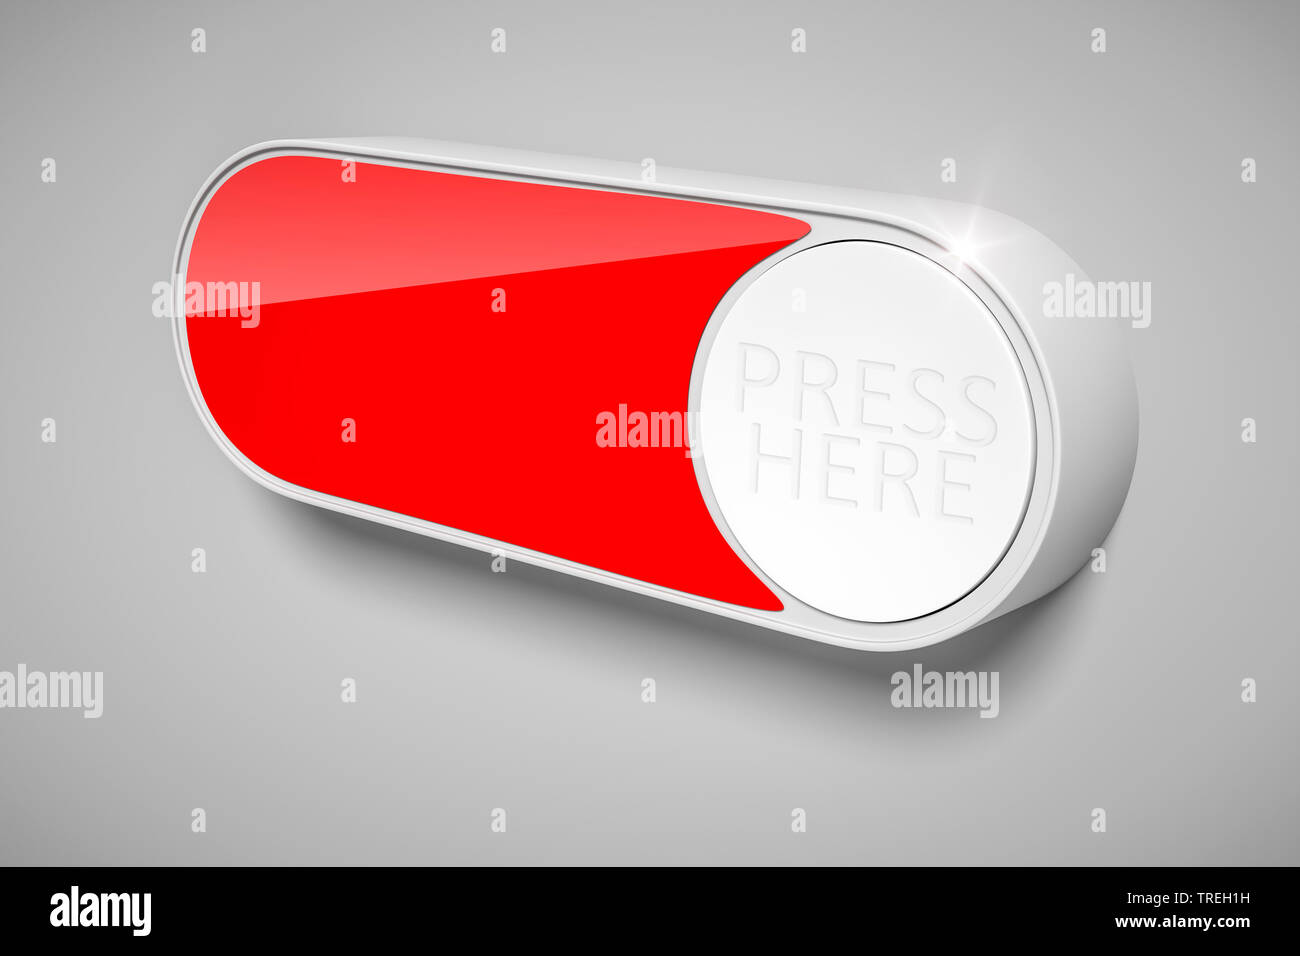 3D-Computergrafik, symbolisierte Taste ohne Aufschrift in Rot | 3D computer graphic, symbolic red button without label  | BLWS526469.jpg [ (c) blickwi - Stock Image